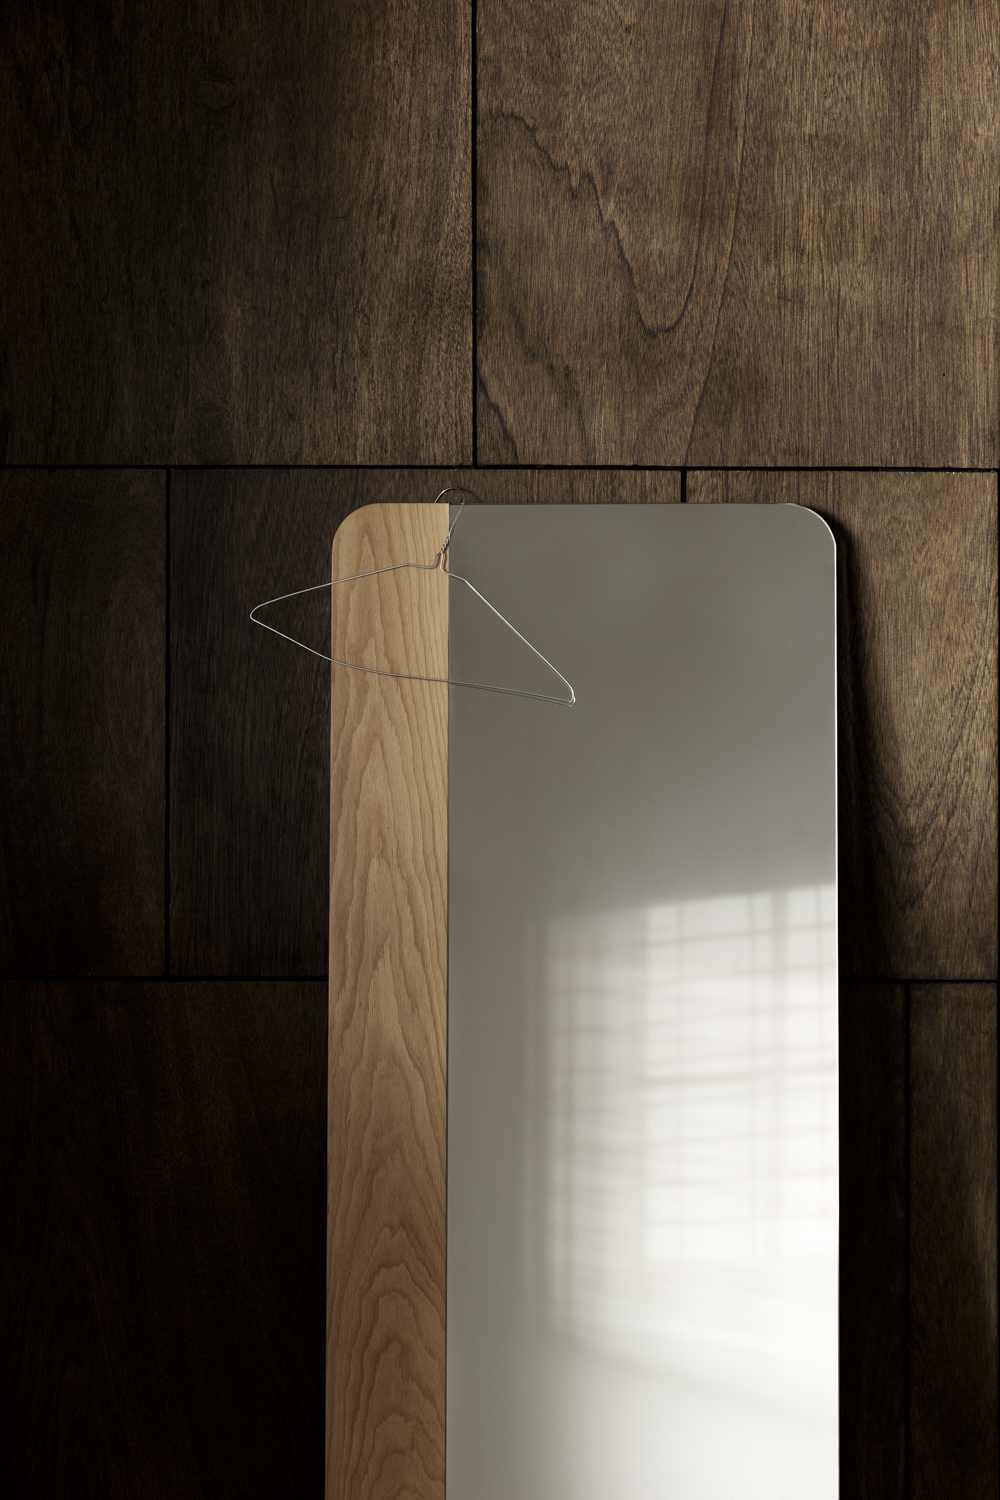 Gallery Of Narcisse Mirror By Anaca Studio Local Australian Furniture Design Collingwood, Melbourne Image 2